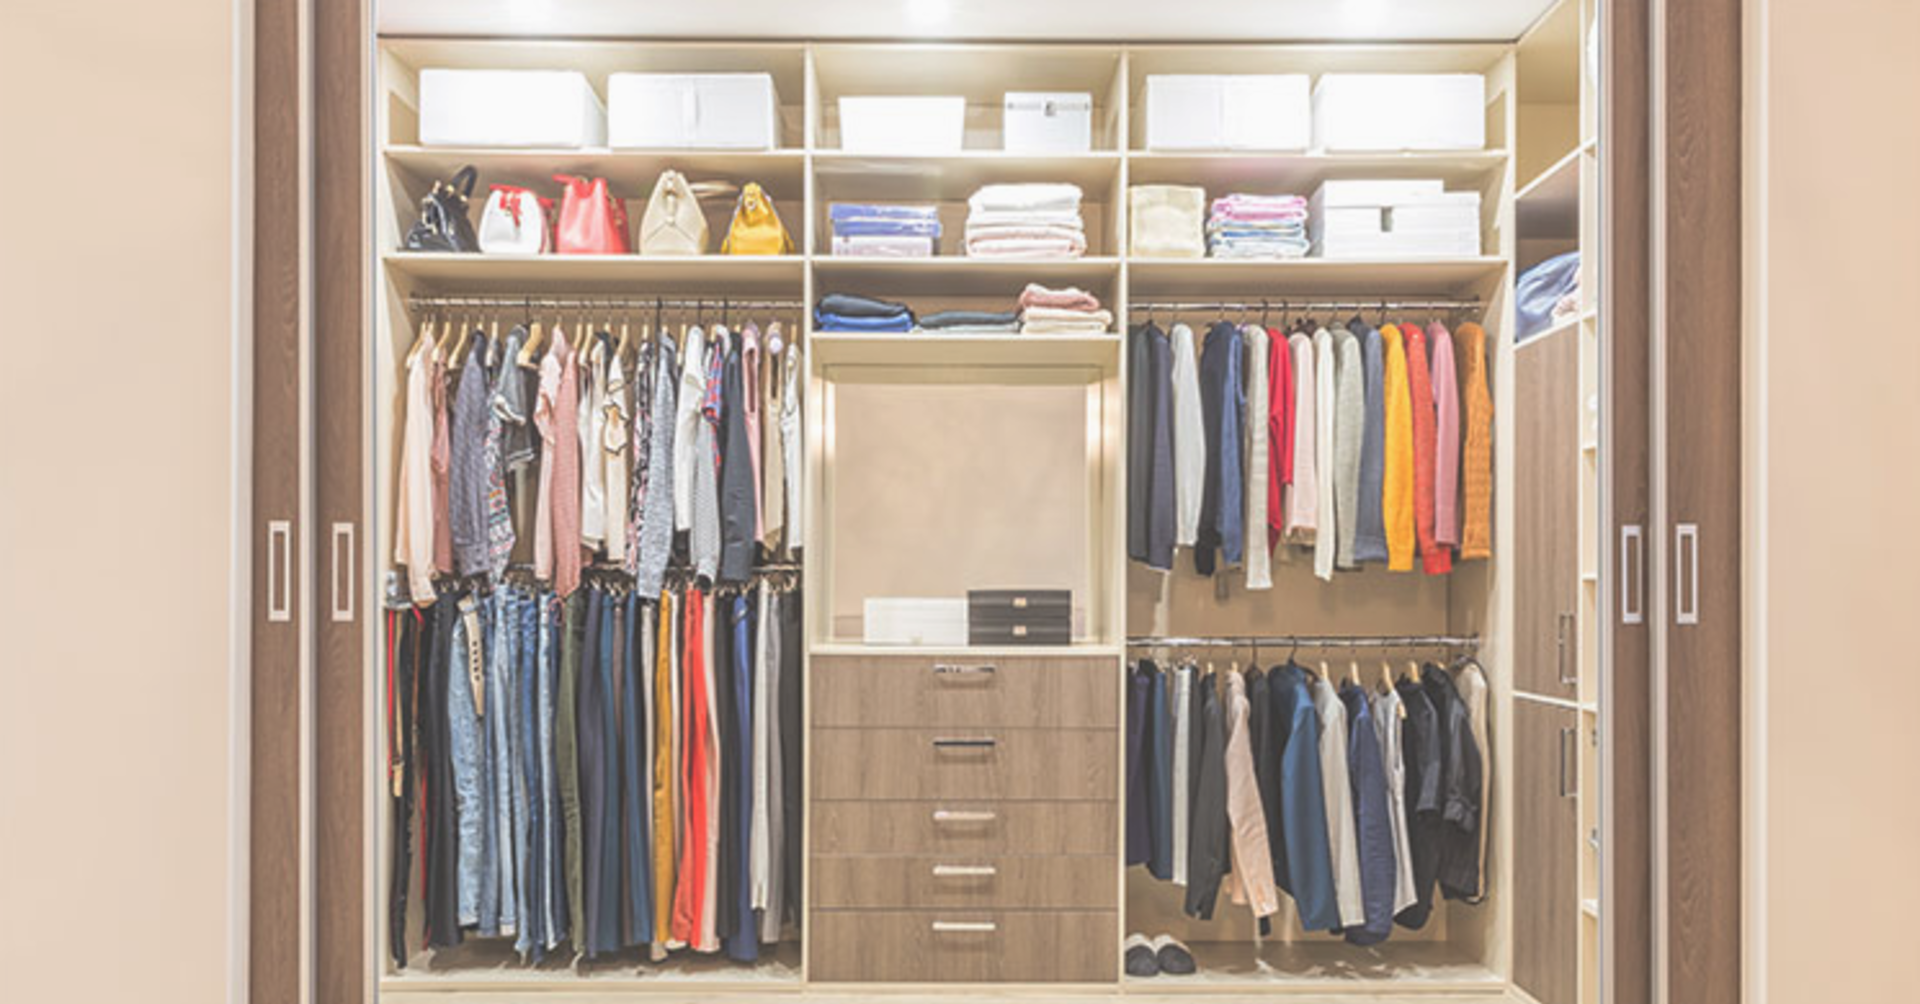 Whether selling or just tiding up, this will help you achieve your goal of getting organized!